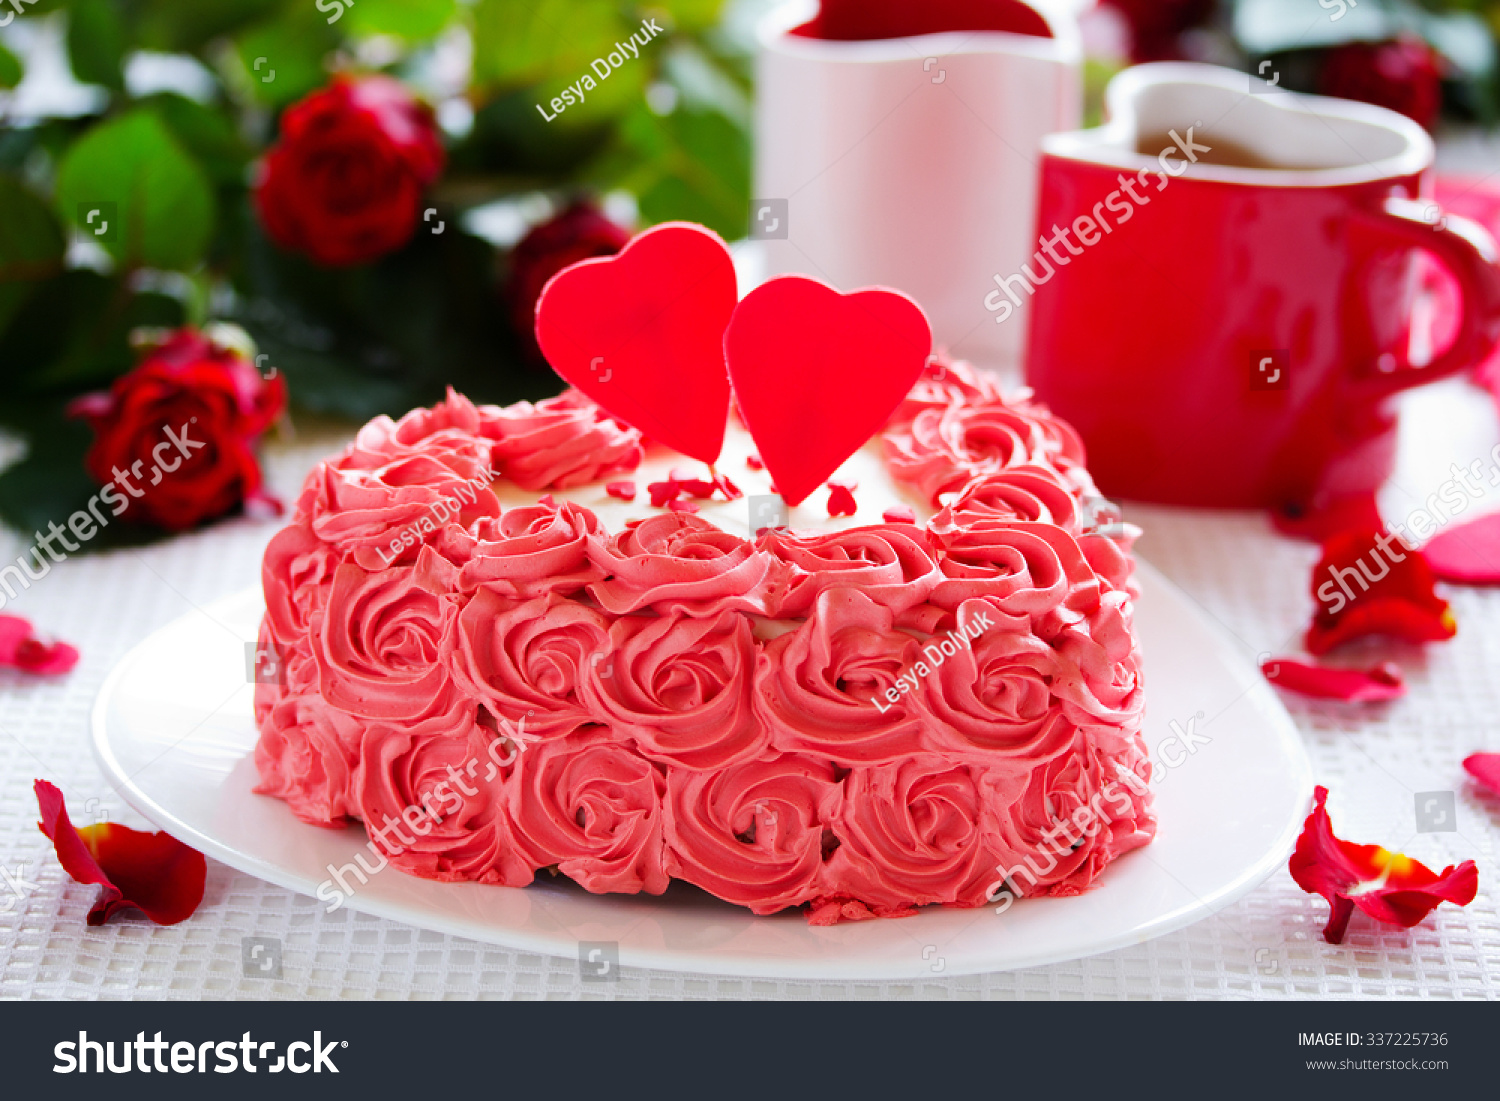 Magnificent Birthday Cake Valentines Day Roses Stock Photo Edit Now 337225736 Funny Birthday Cards Online Fluifree Goldxyz